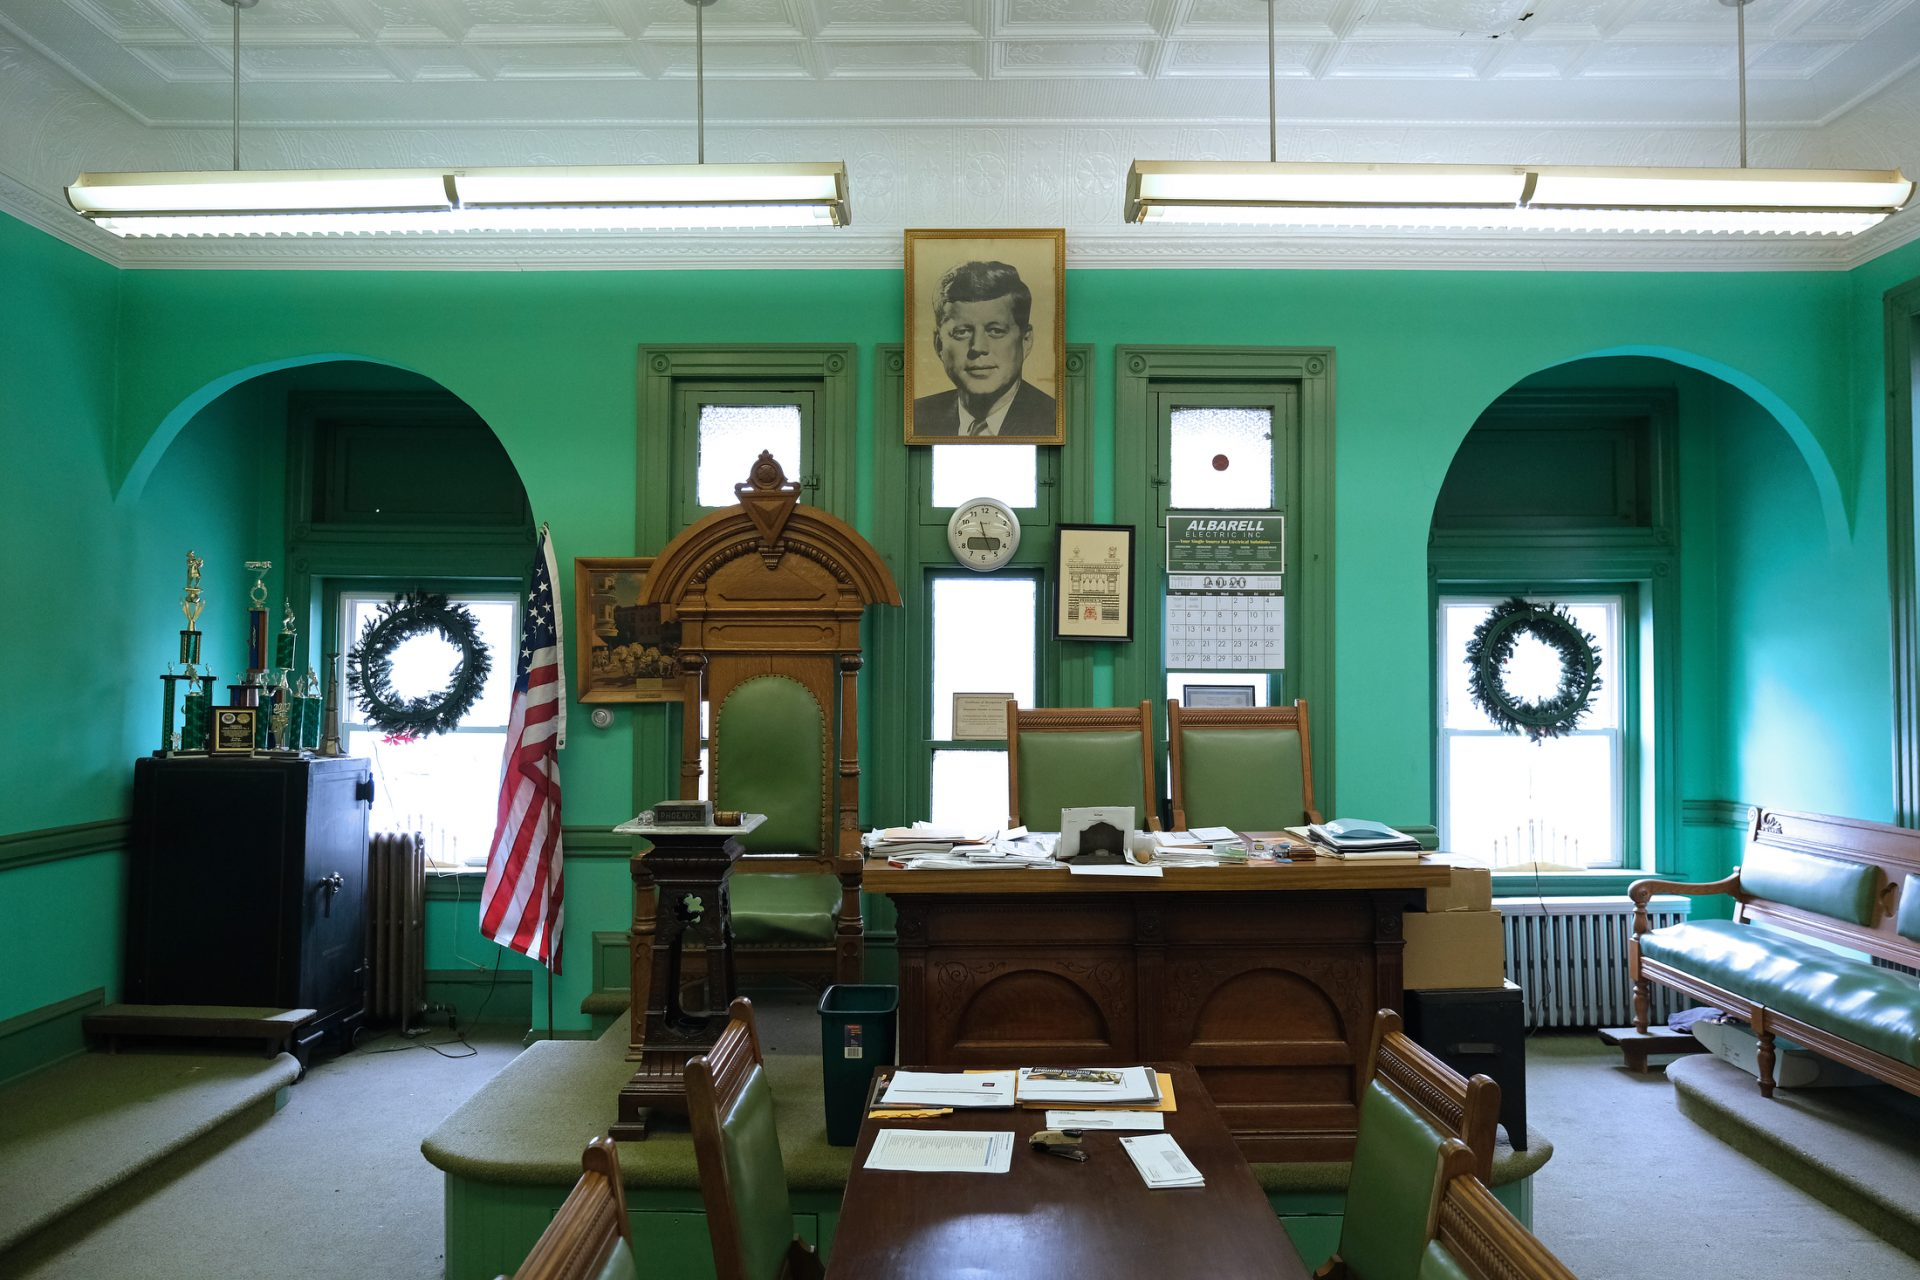 Inside the meeting room of the 19th century Phoenix Fire Company No. 2 on Jan. 16, 2020, in Shenandoah, Pennsylvania.